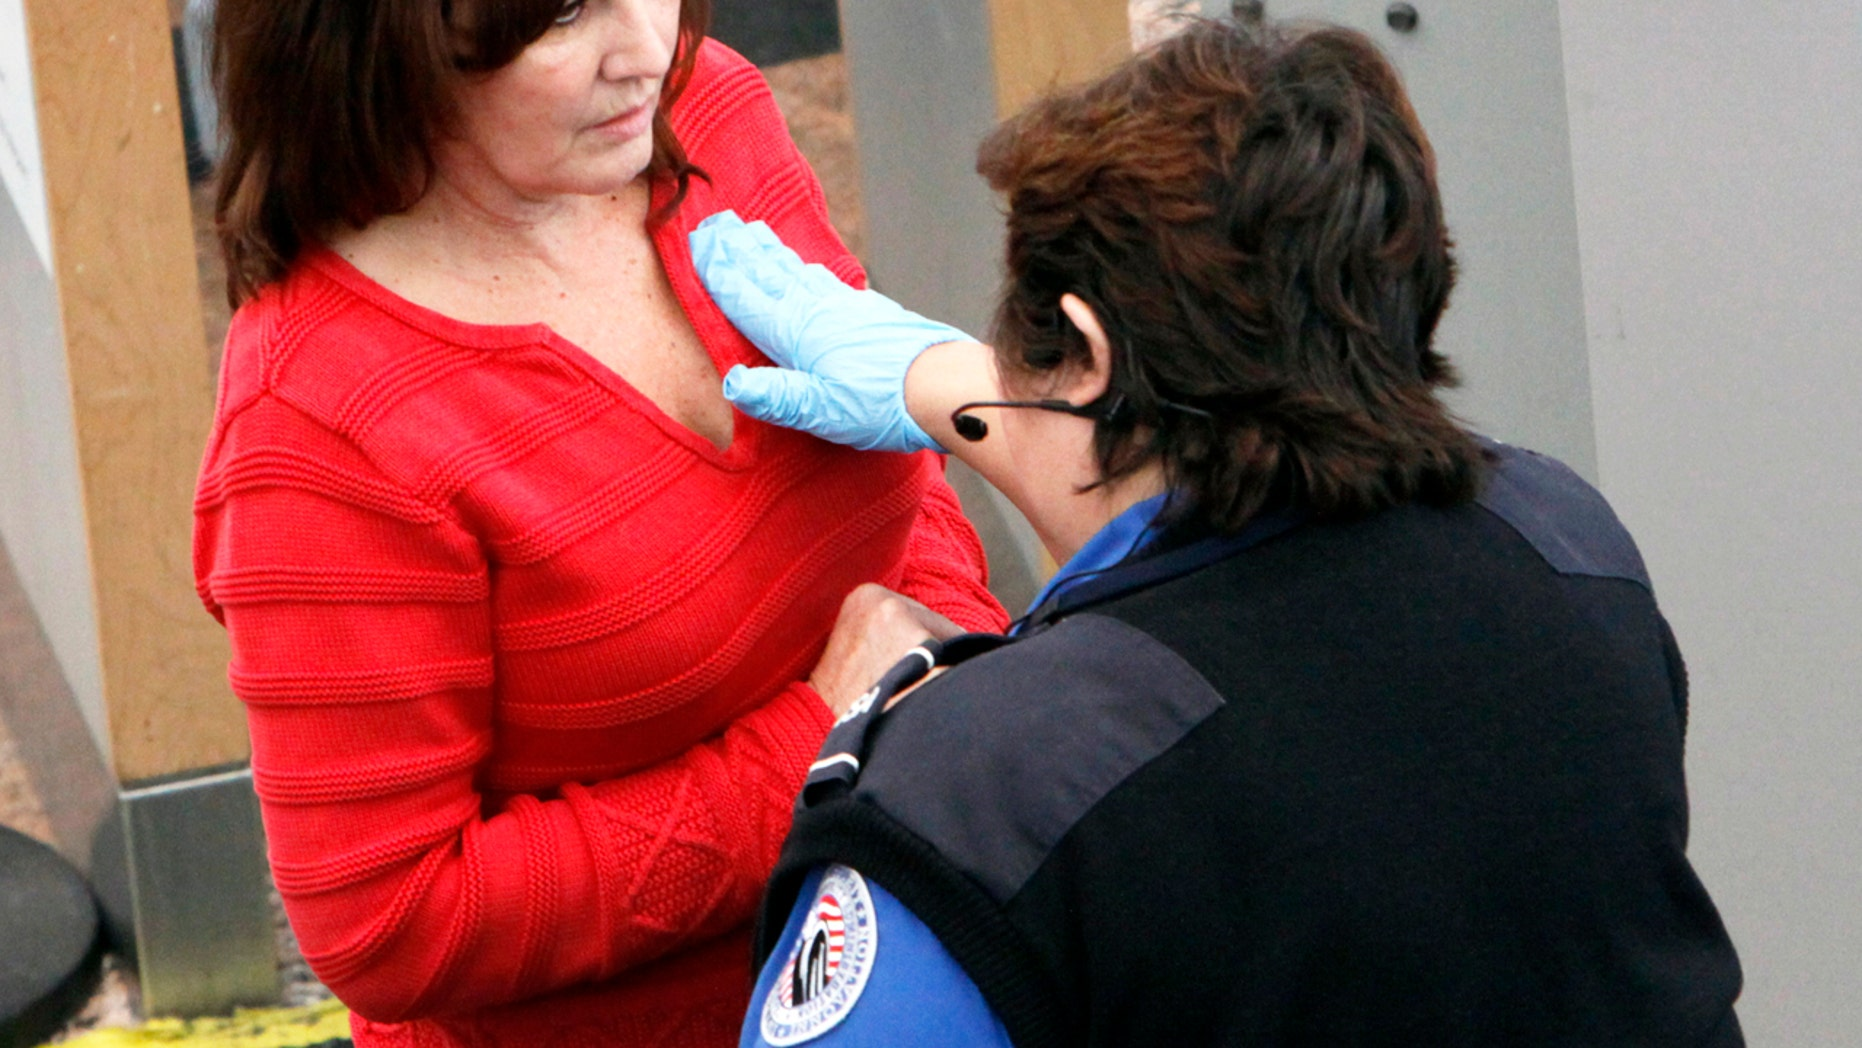 A Los Angeles-area mother says a TSA agent got too rough will performing a security check.